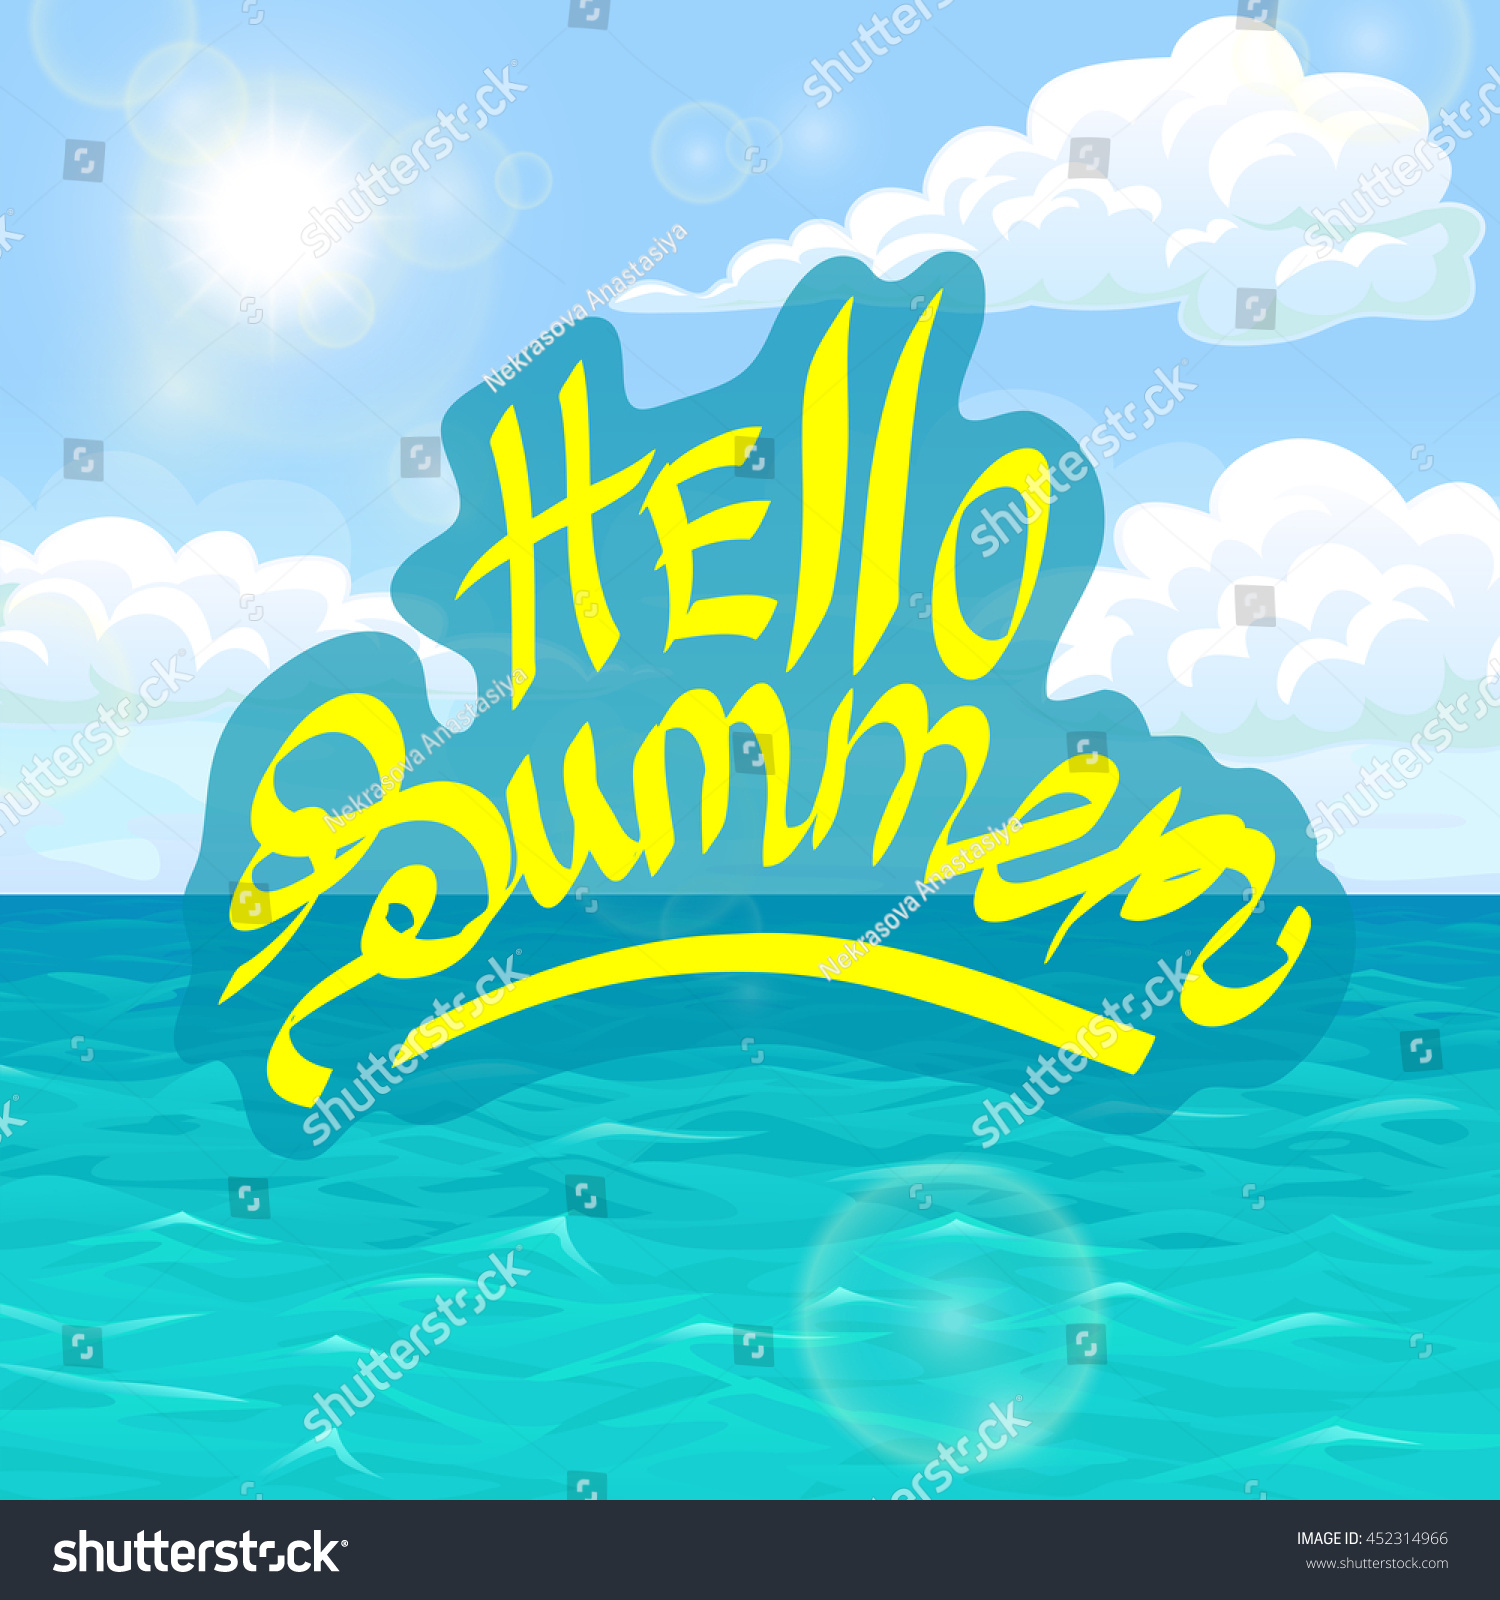 Hello Summer Yellow Lettering On Sea Landscape. Ocean, Blue Waves, Sky,  Clouds